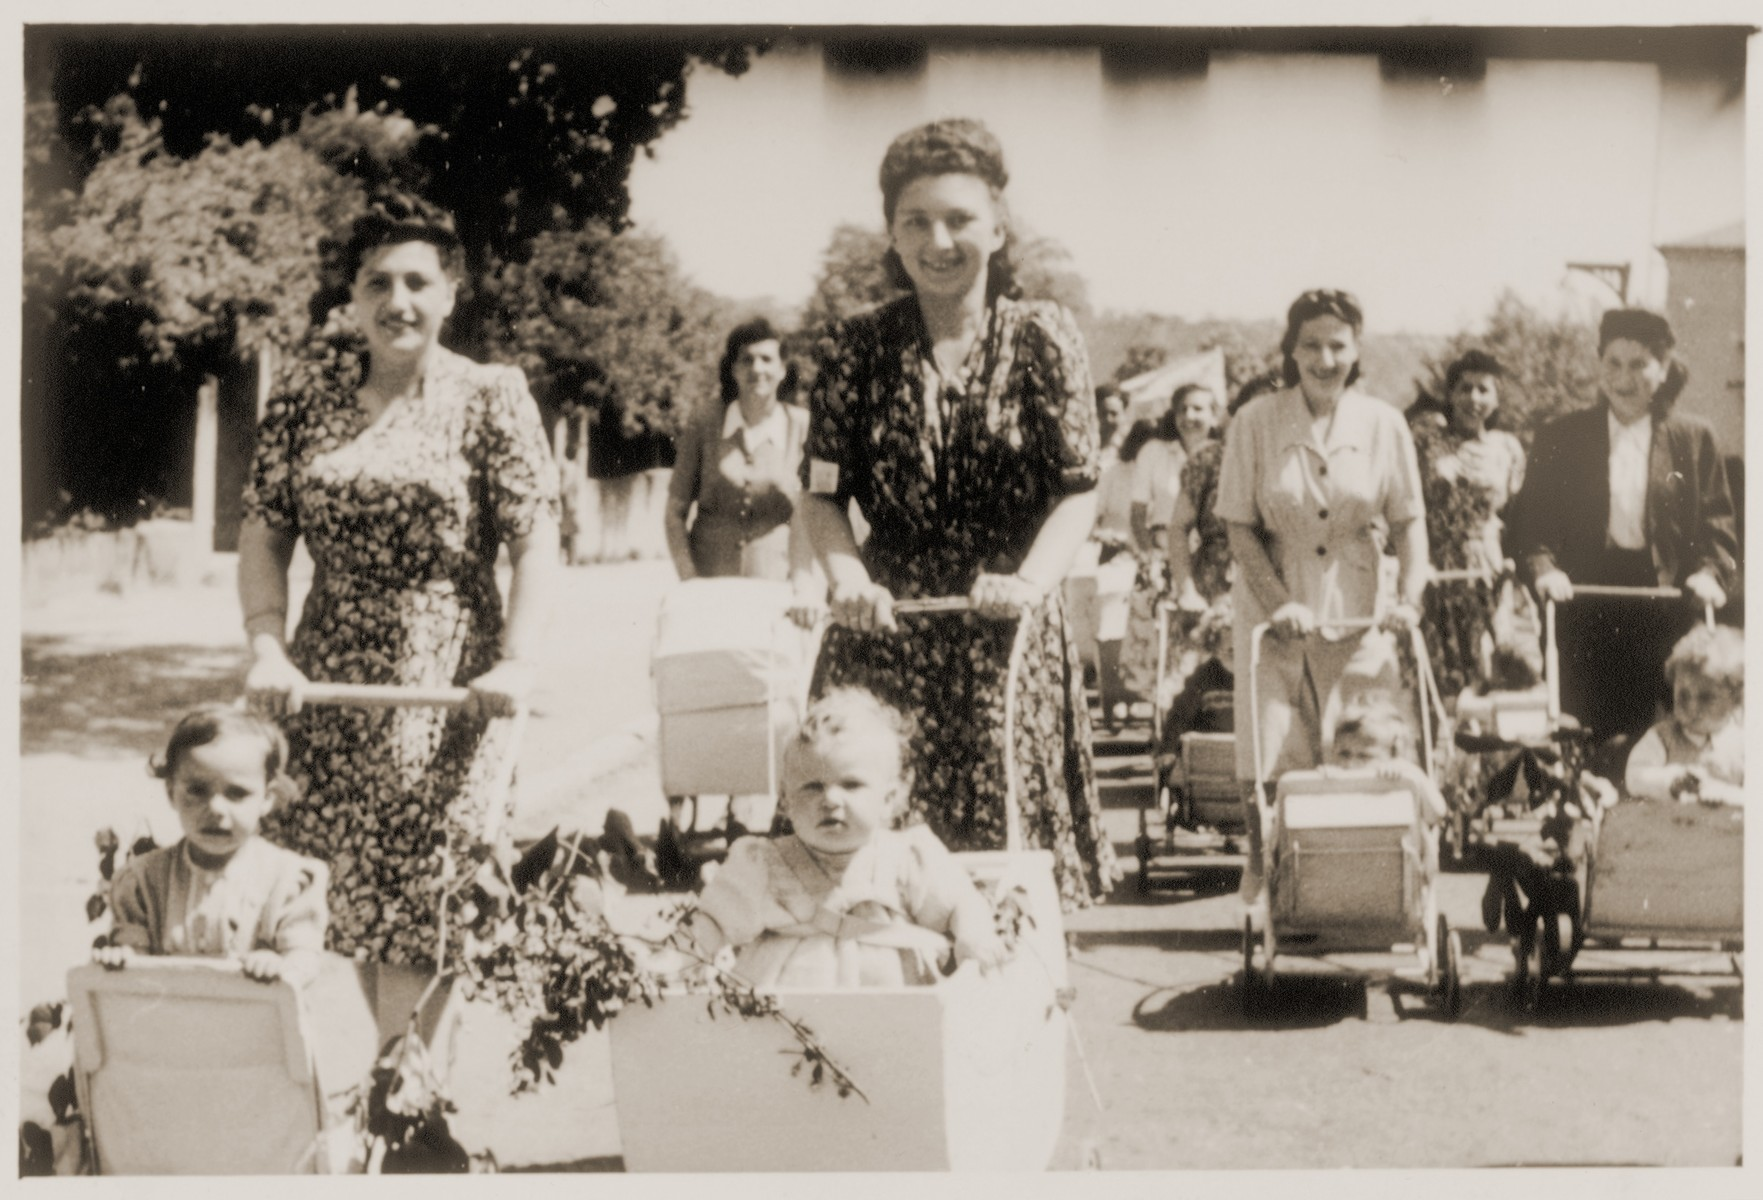 Young mothers take their babies for a stroll in the Landsberg DP camp.    Dorit Mandelbaum is pictured in the baby carriage on the left.  Her mother, Anka, is pushing the carriage.  Chava Oppenheim pushes her son Aviezer in the carriage, third from the right.  Also pictured is Laja Minc.